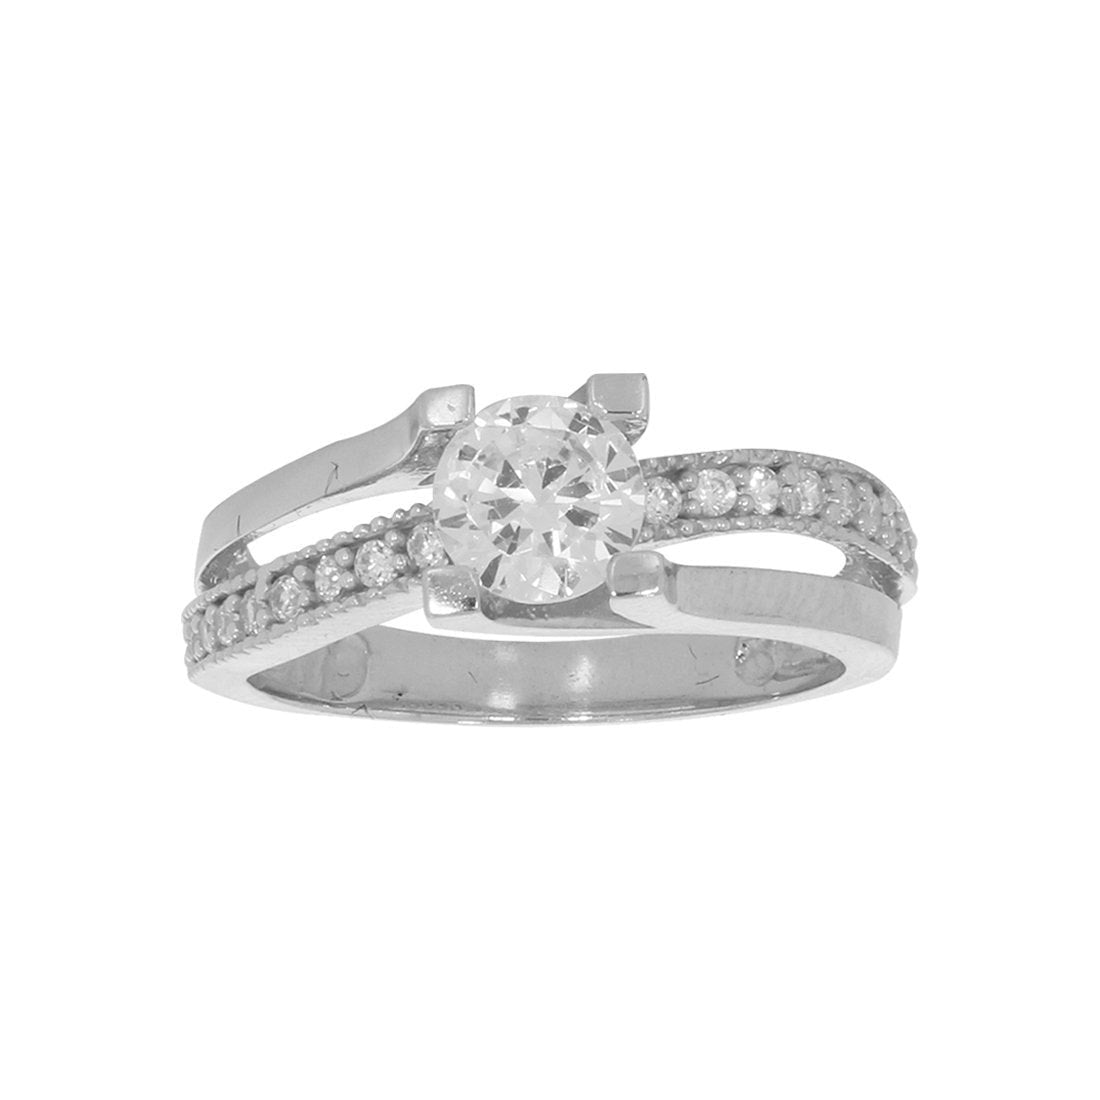 Anillo Oro Blanco 10k, con Zirconia Central de 6 mm, Laterales 1 mm